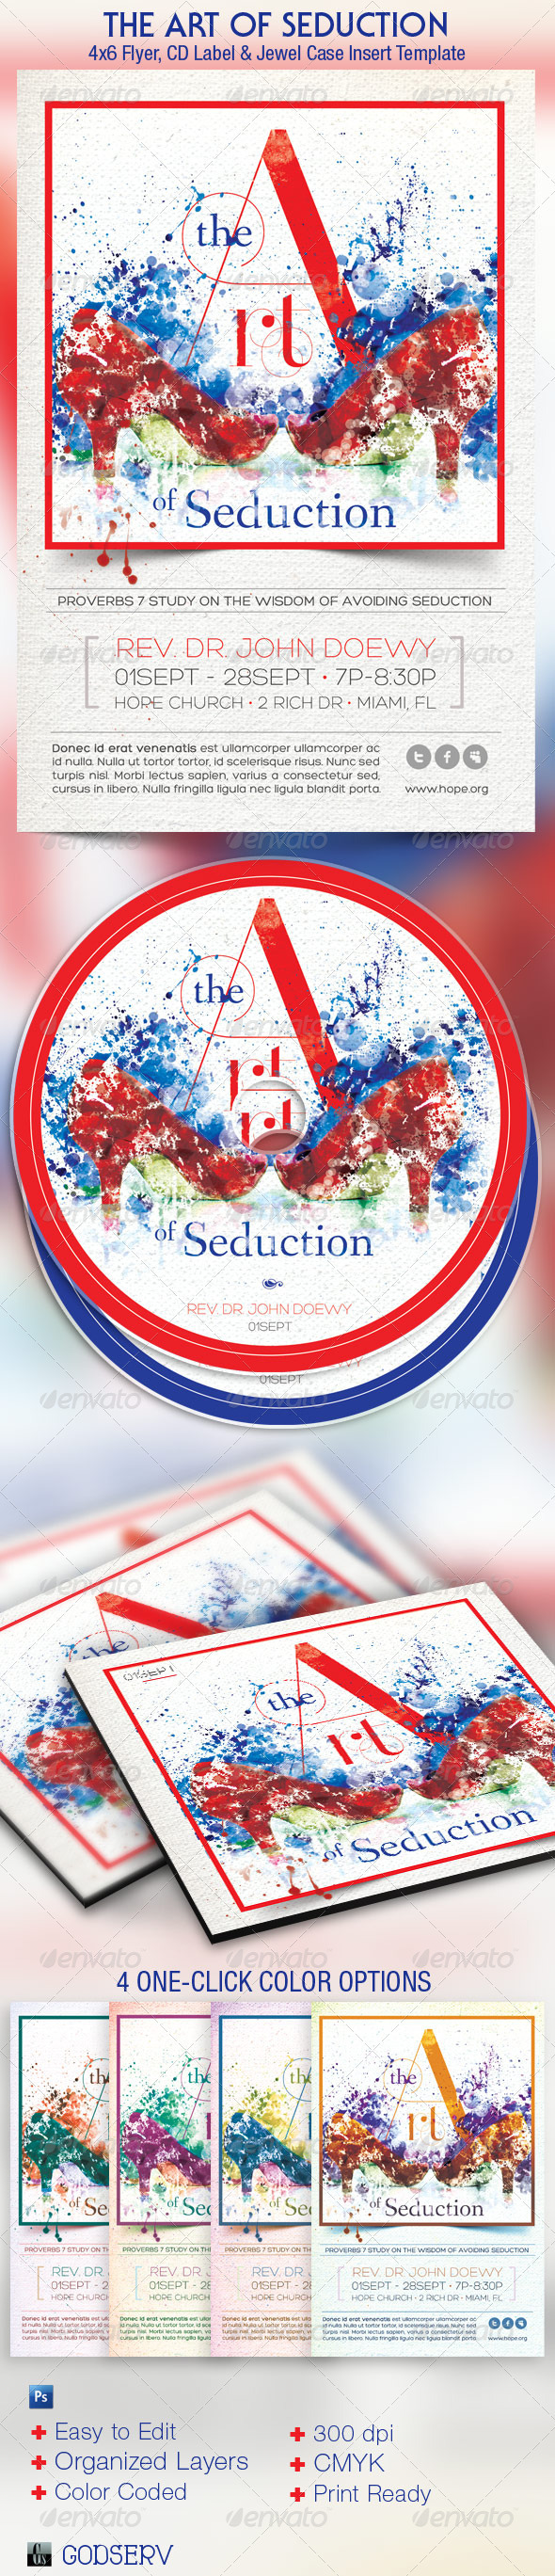 The Art of Seduction Church Flyer and CD Template